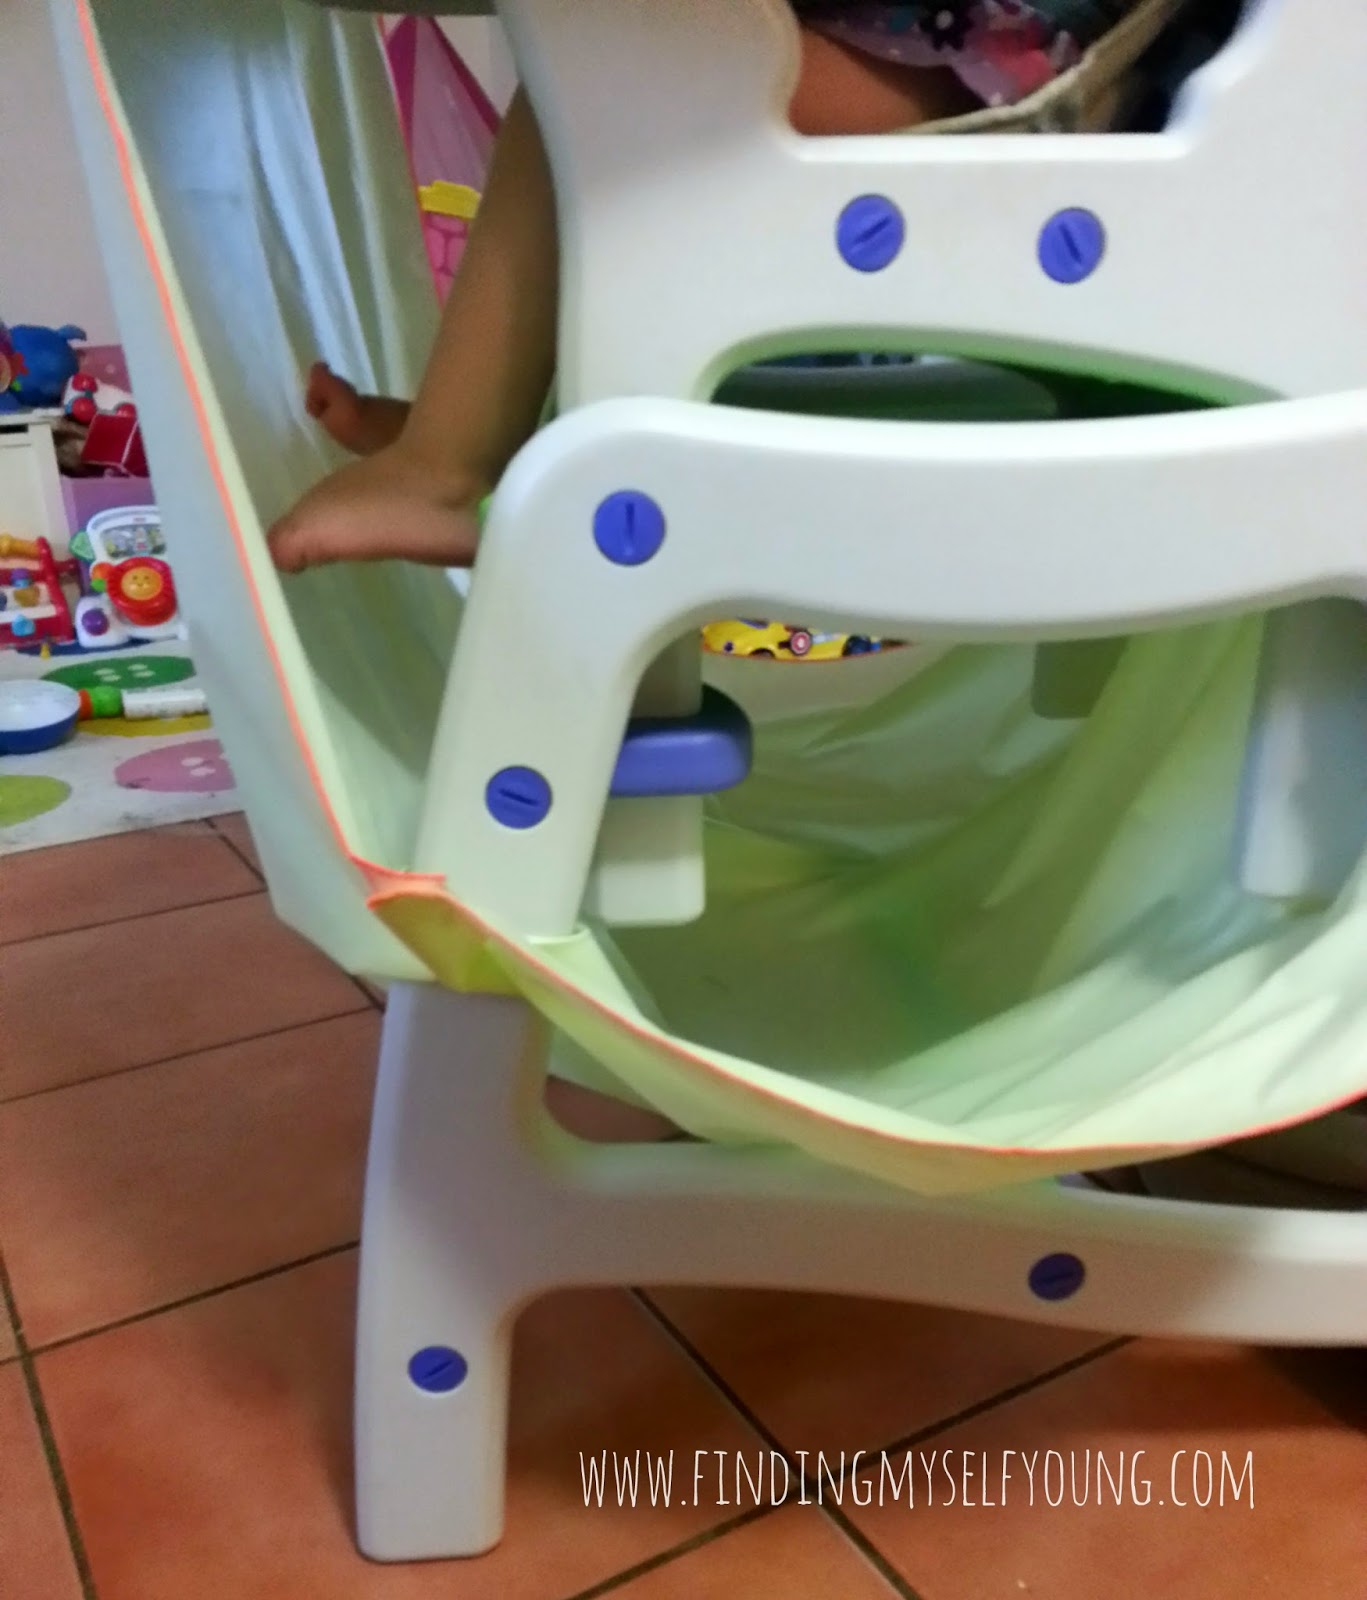 High Chair Food Catcher Covers Limerick Finding Myself Young Mummy Must Have Review Mumma 39s